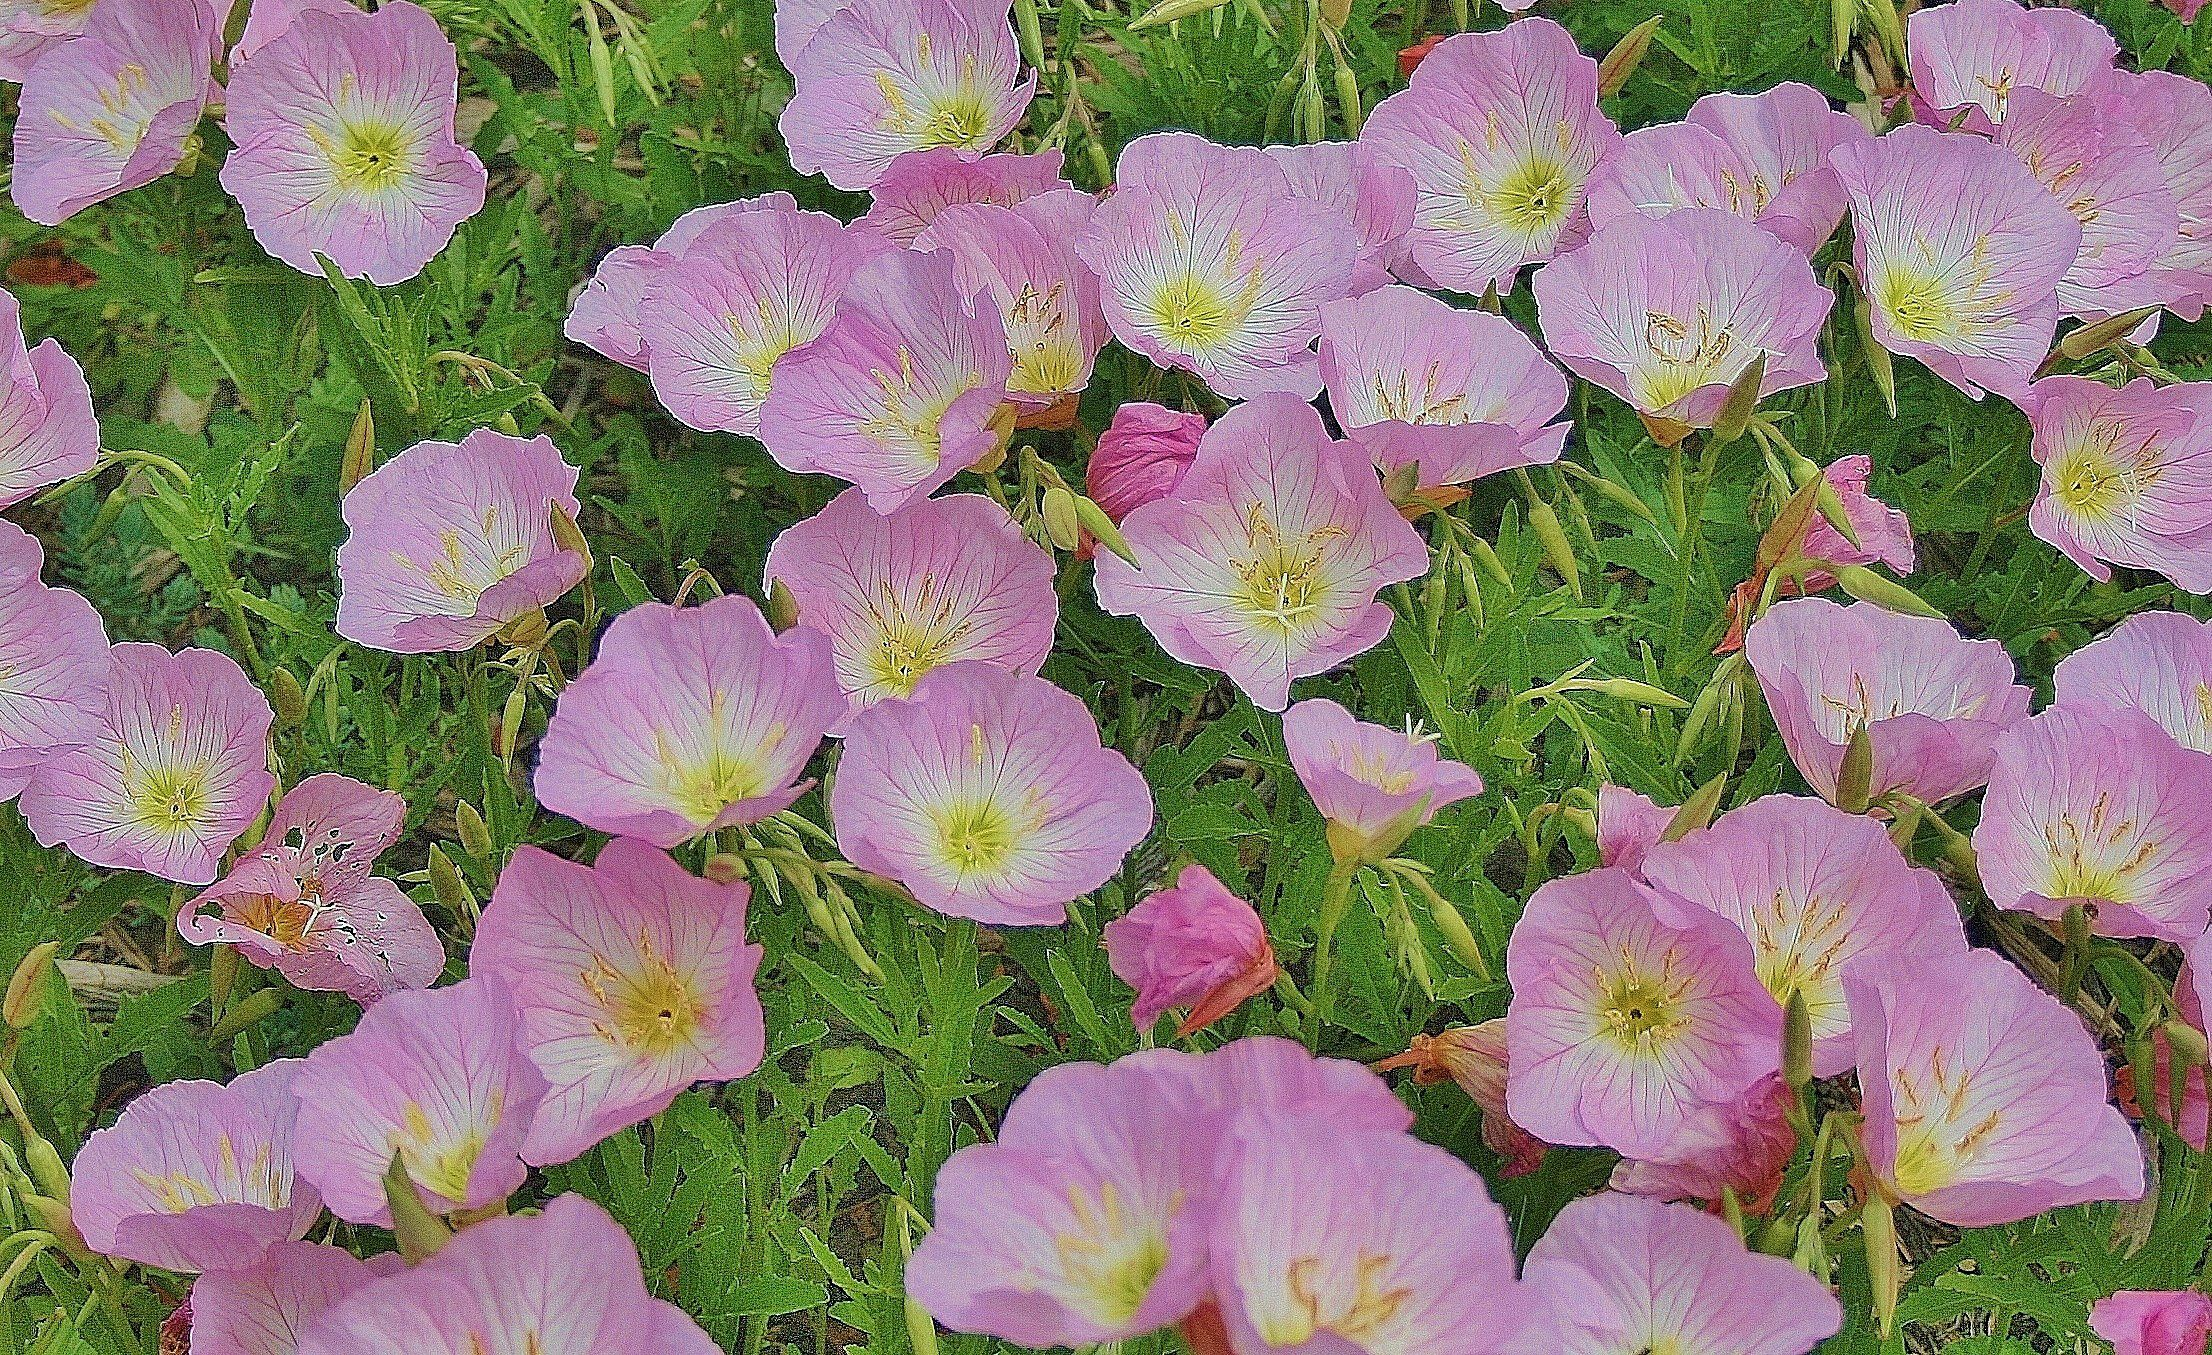 Drought Tolerant Ground Covers With Showy Flowers Drought Tolerant Perennials Drought Tolerant Trees Ground Cover